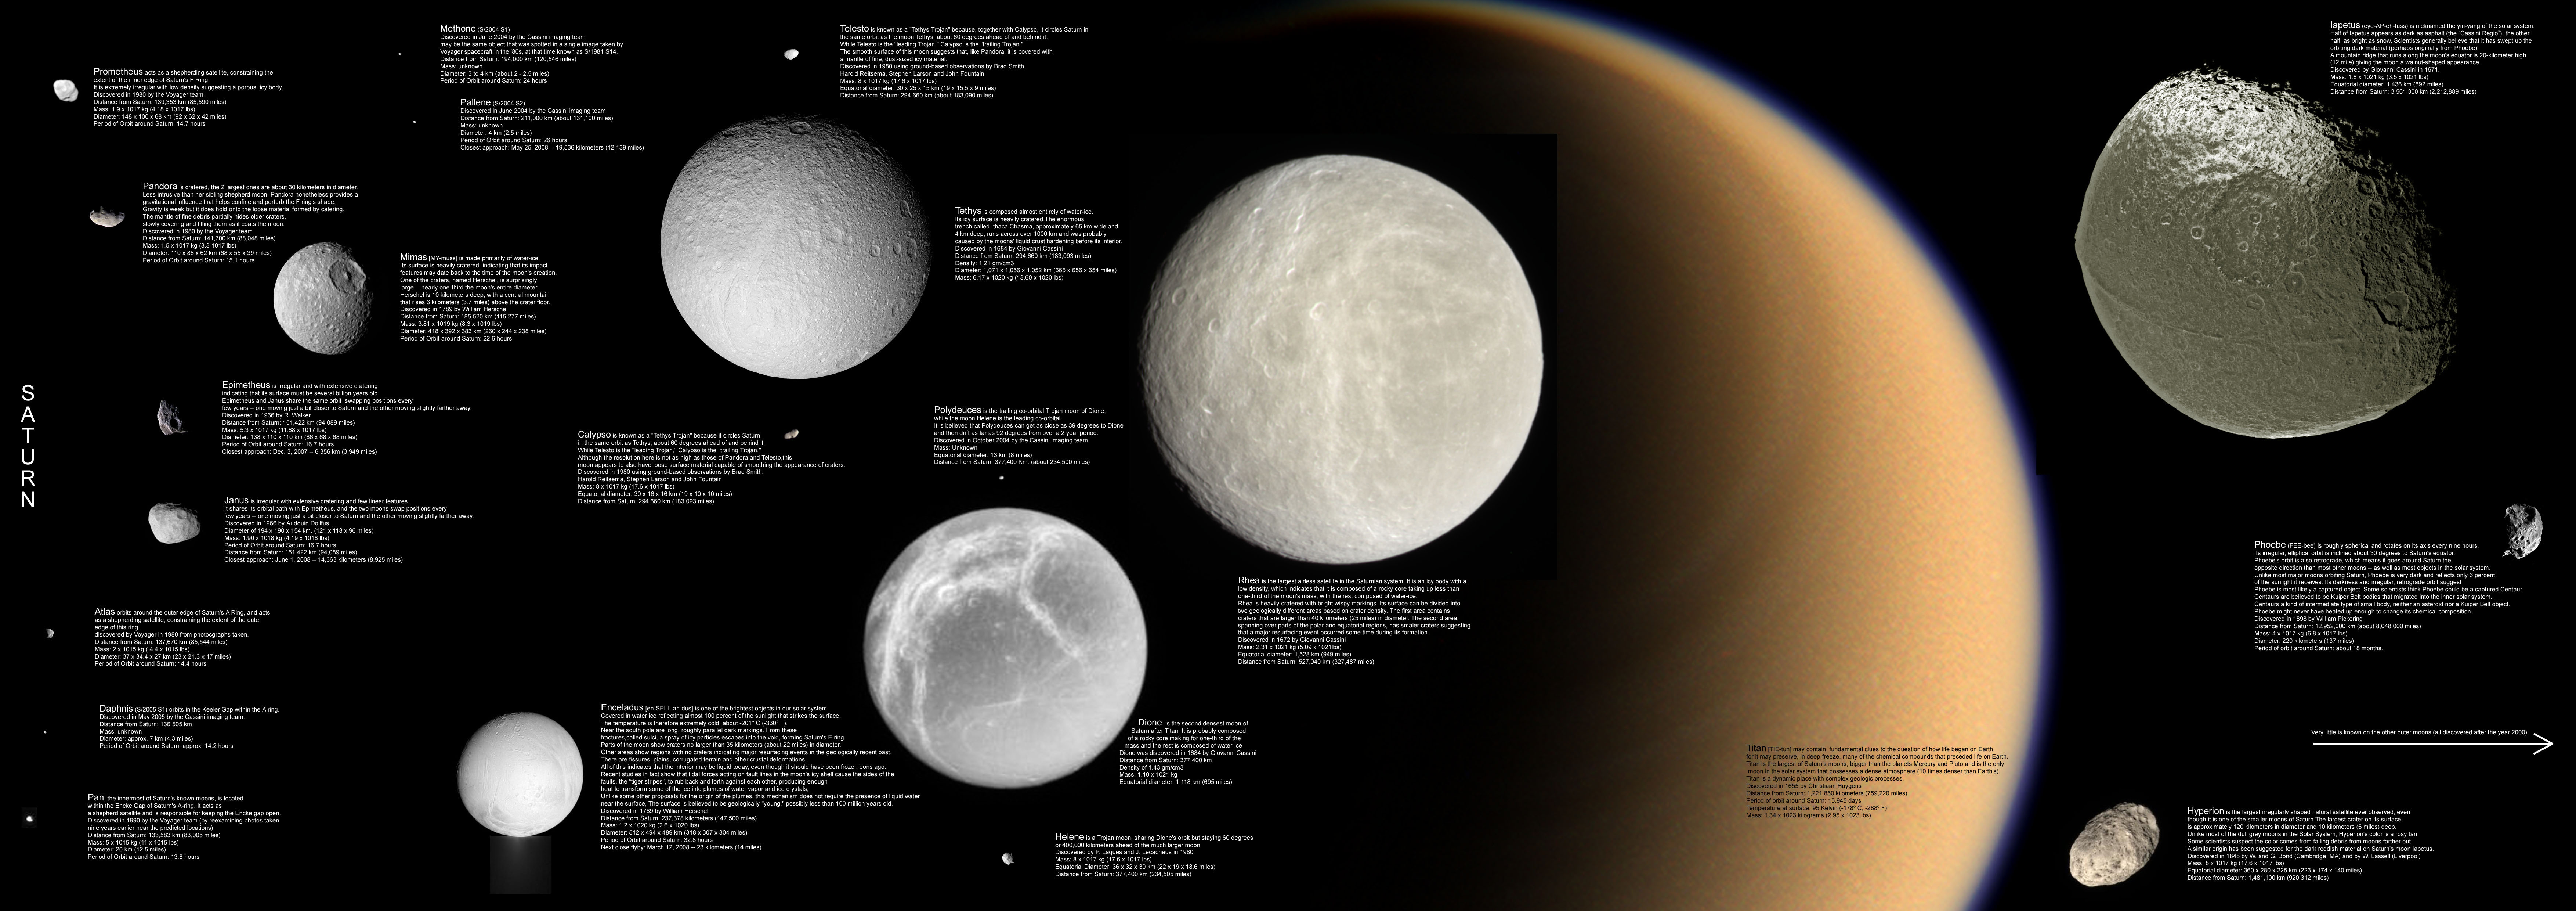 Moons of Saturn 2007